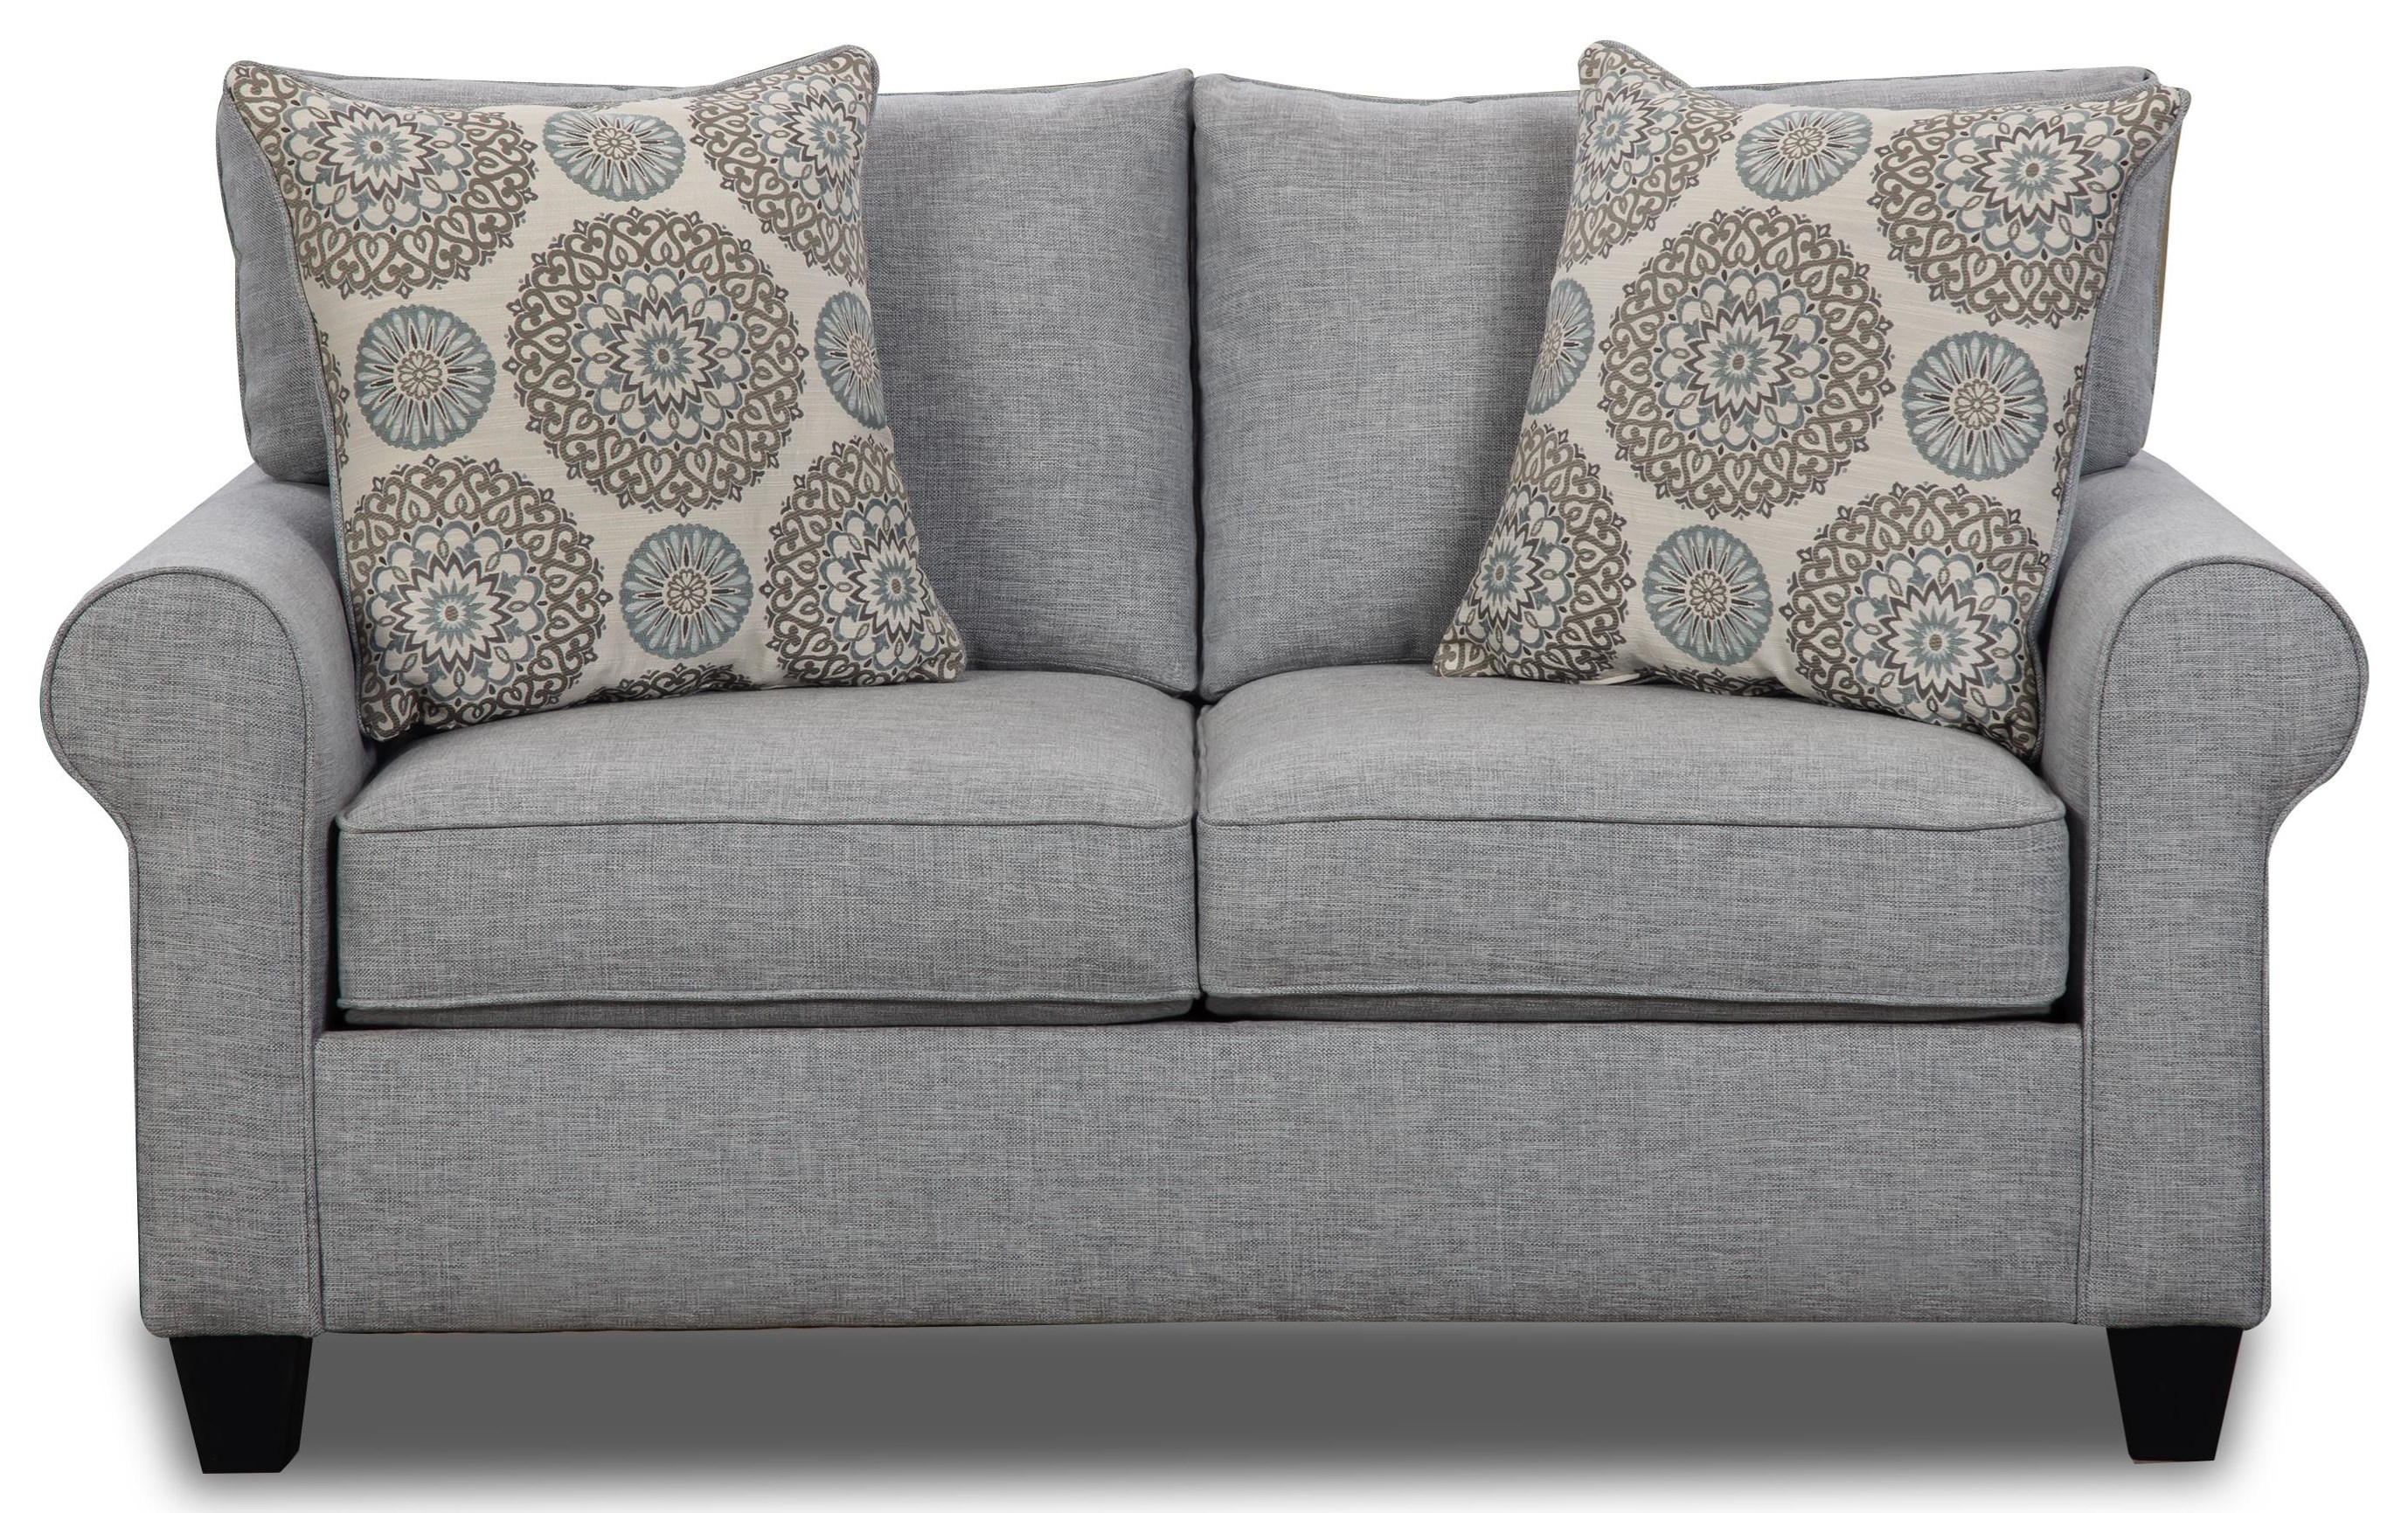 Vivian Loveseat by Behold Home at Darvin Furniture